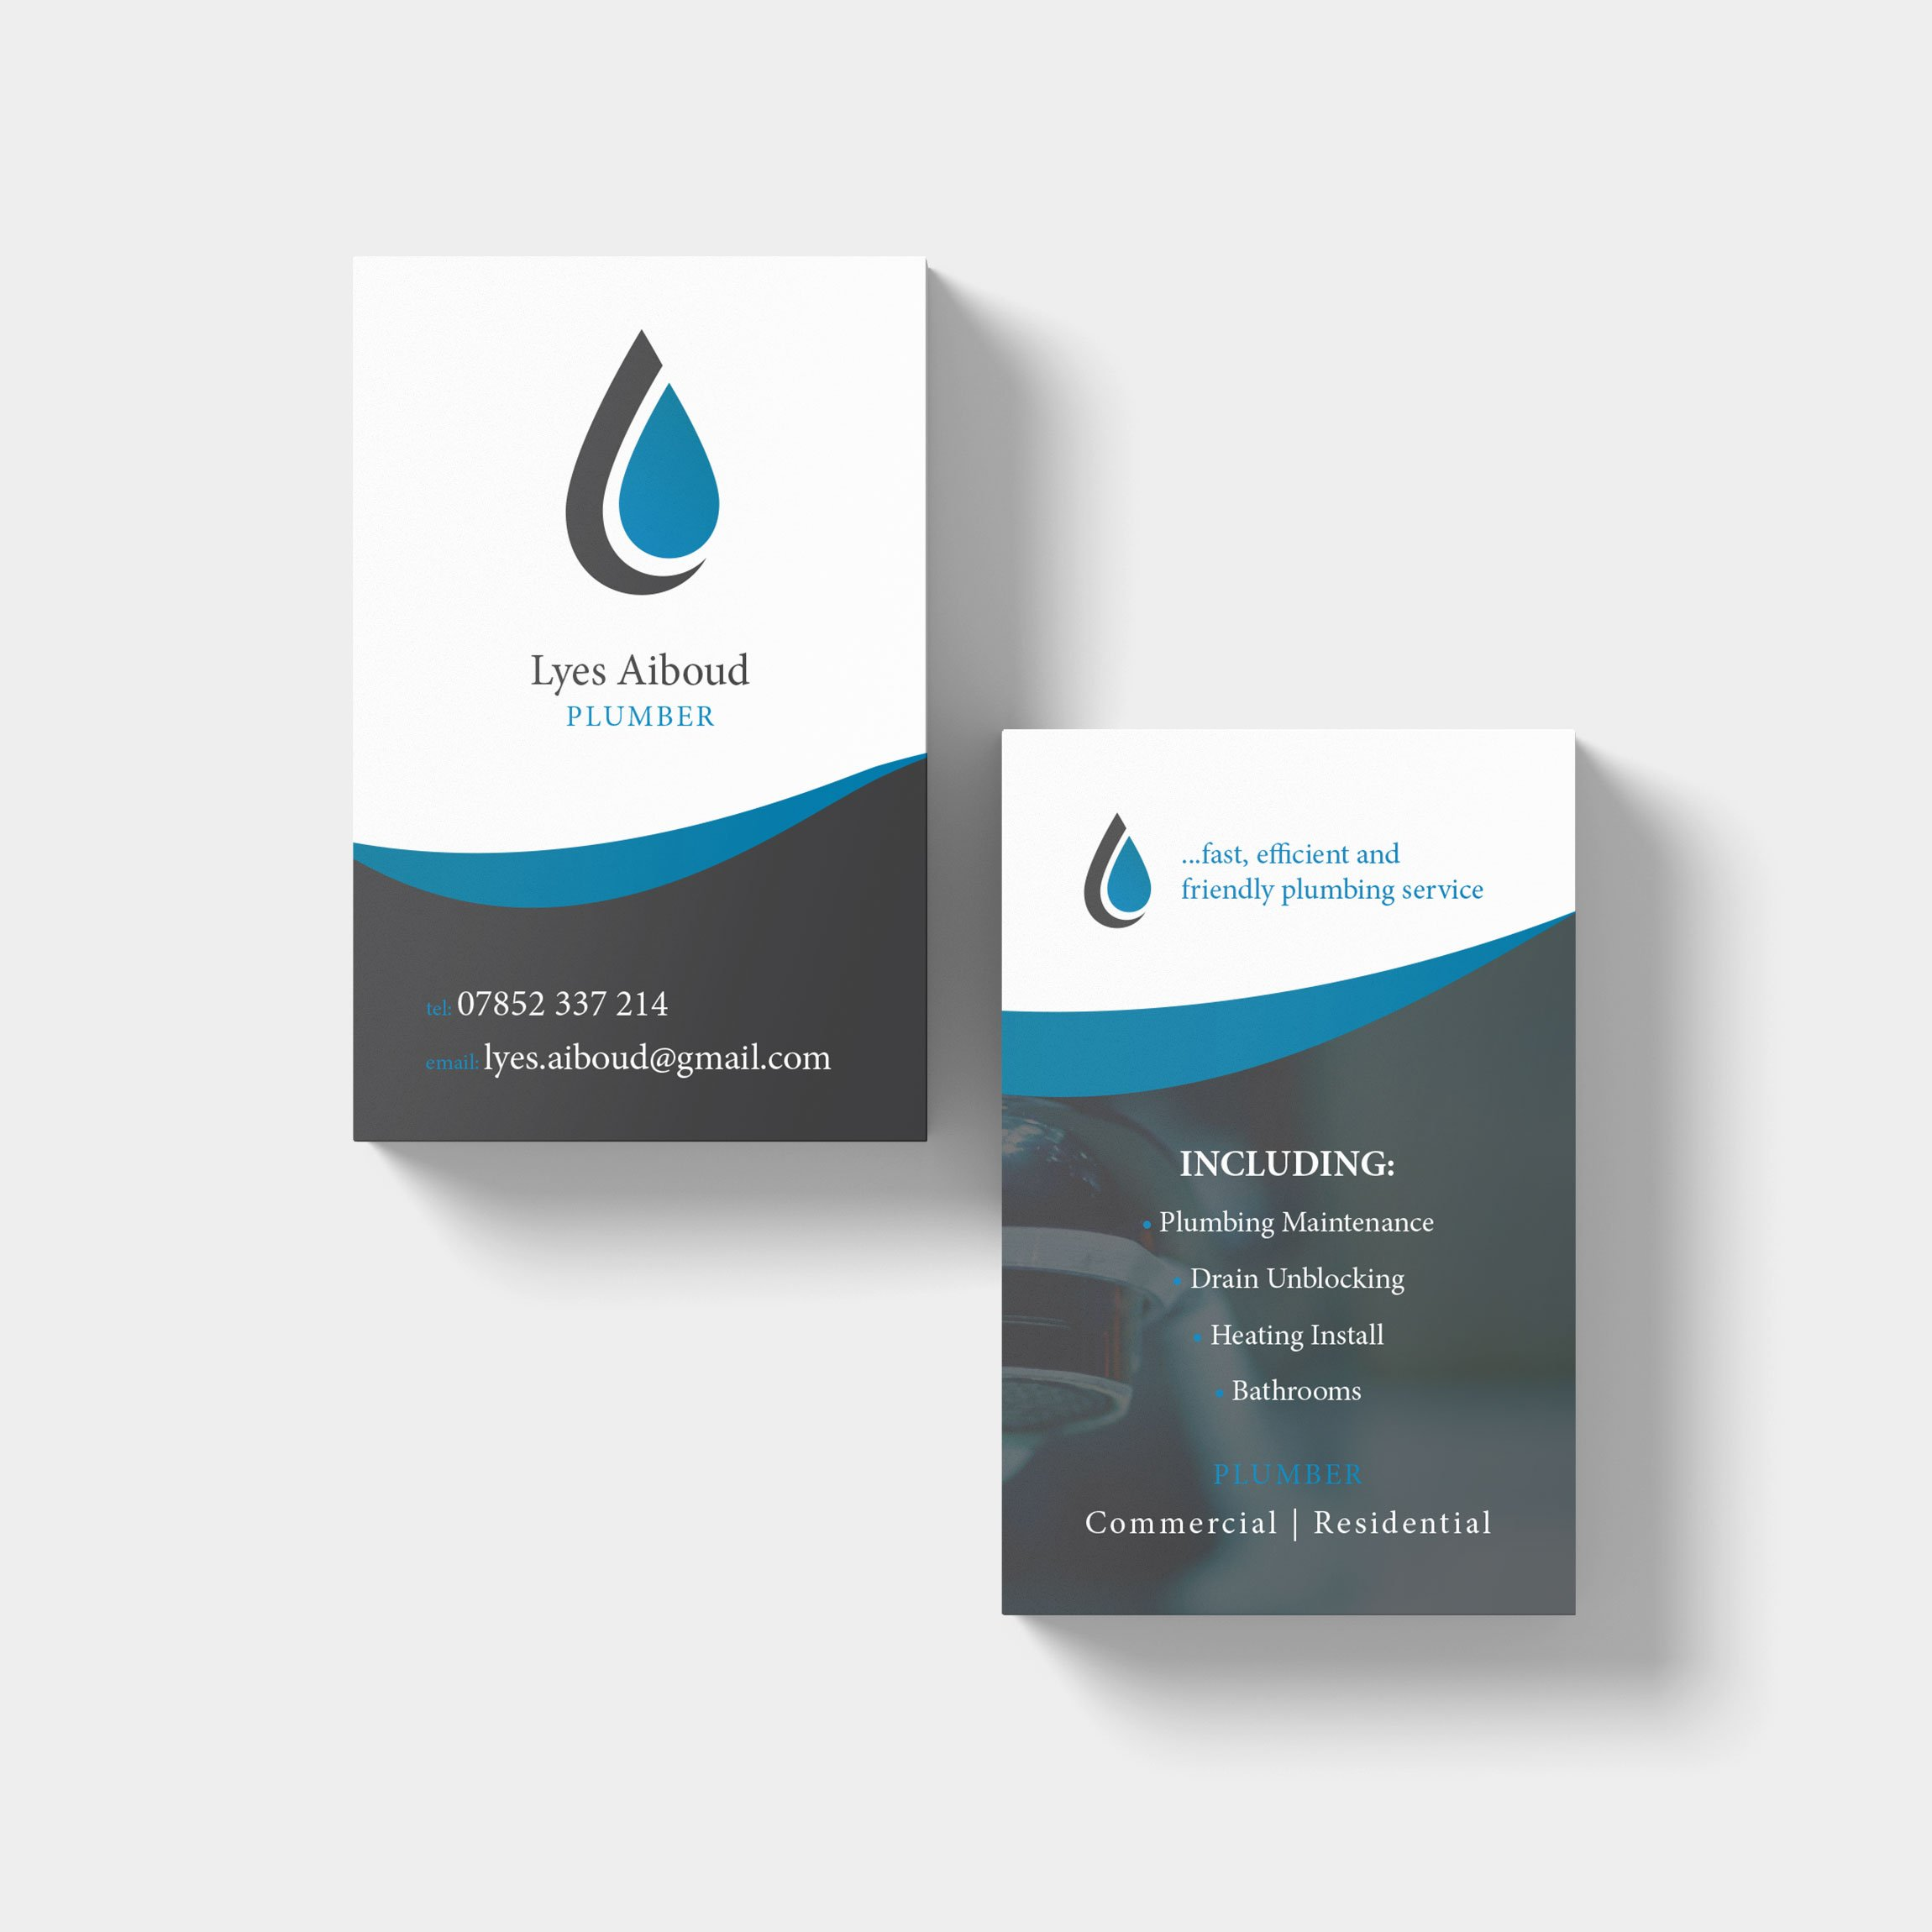 Business Card Design for local plumber Lyes Aiboud